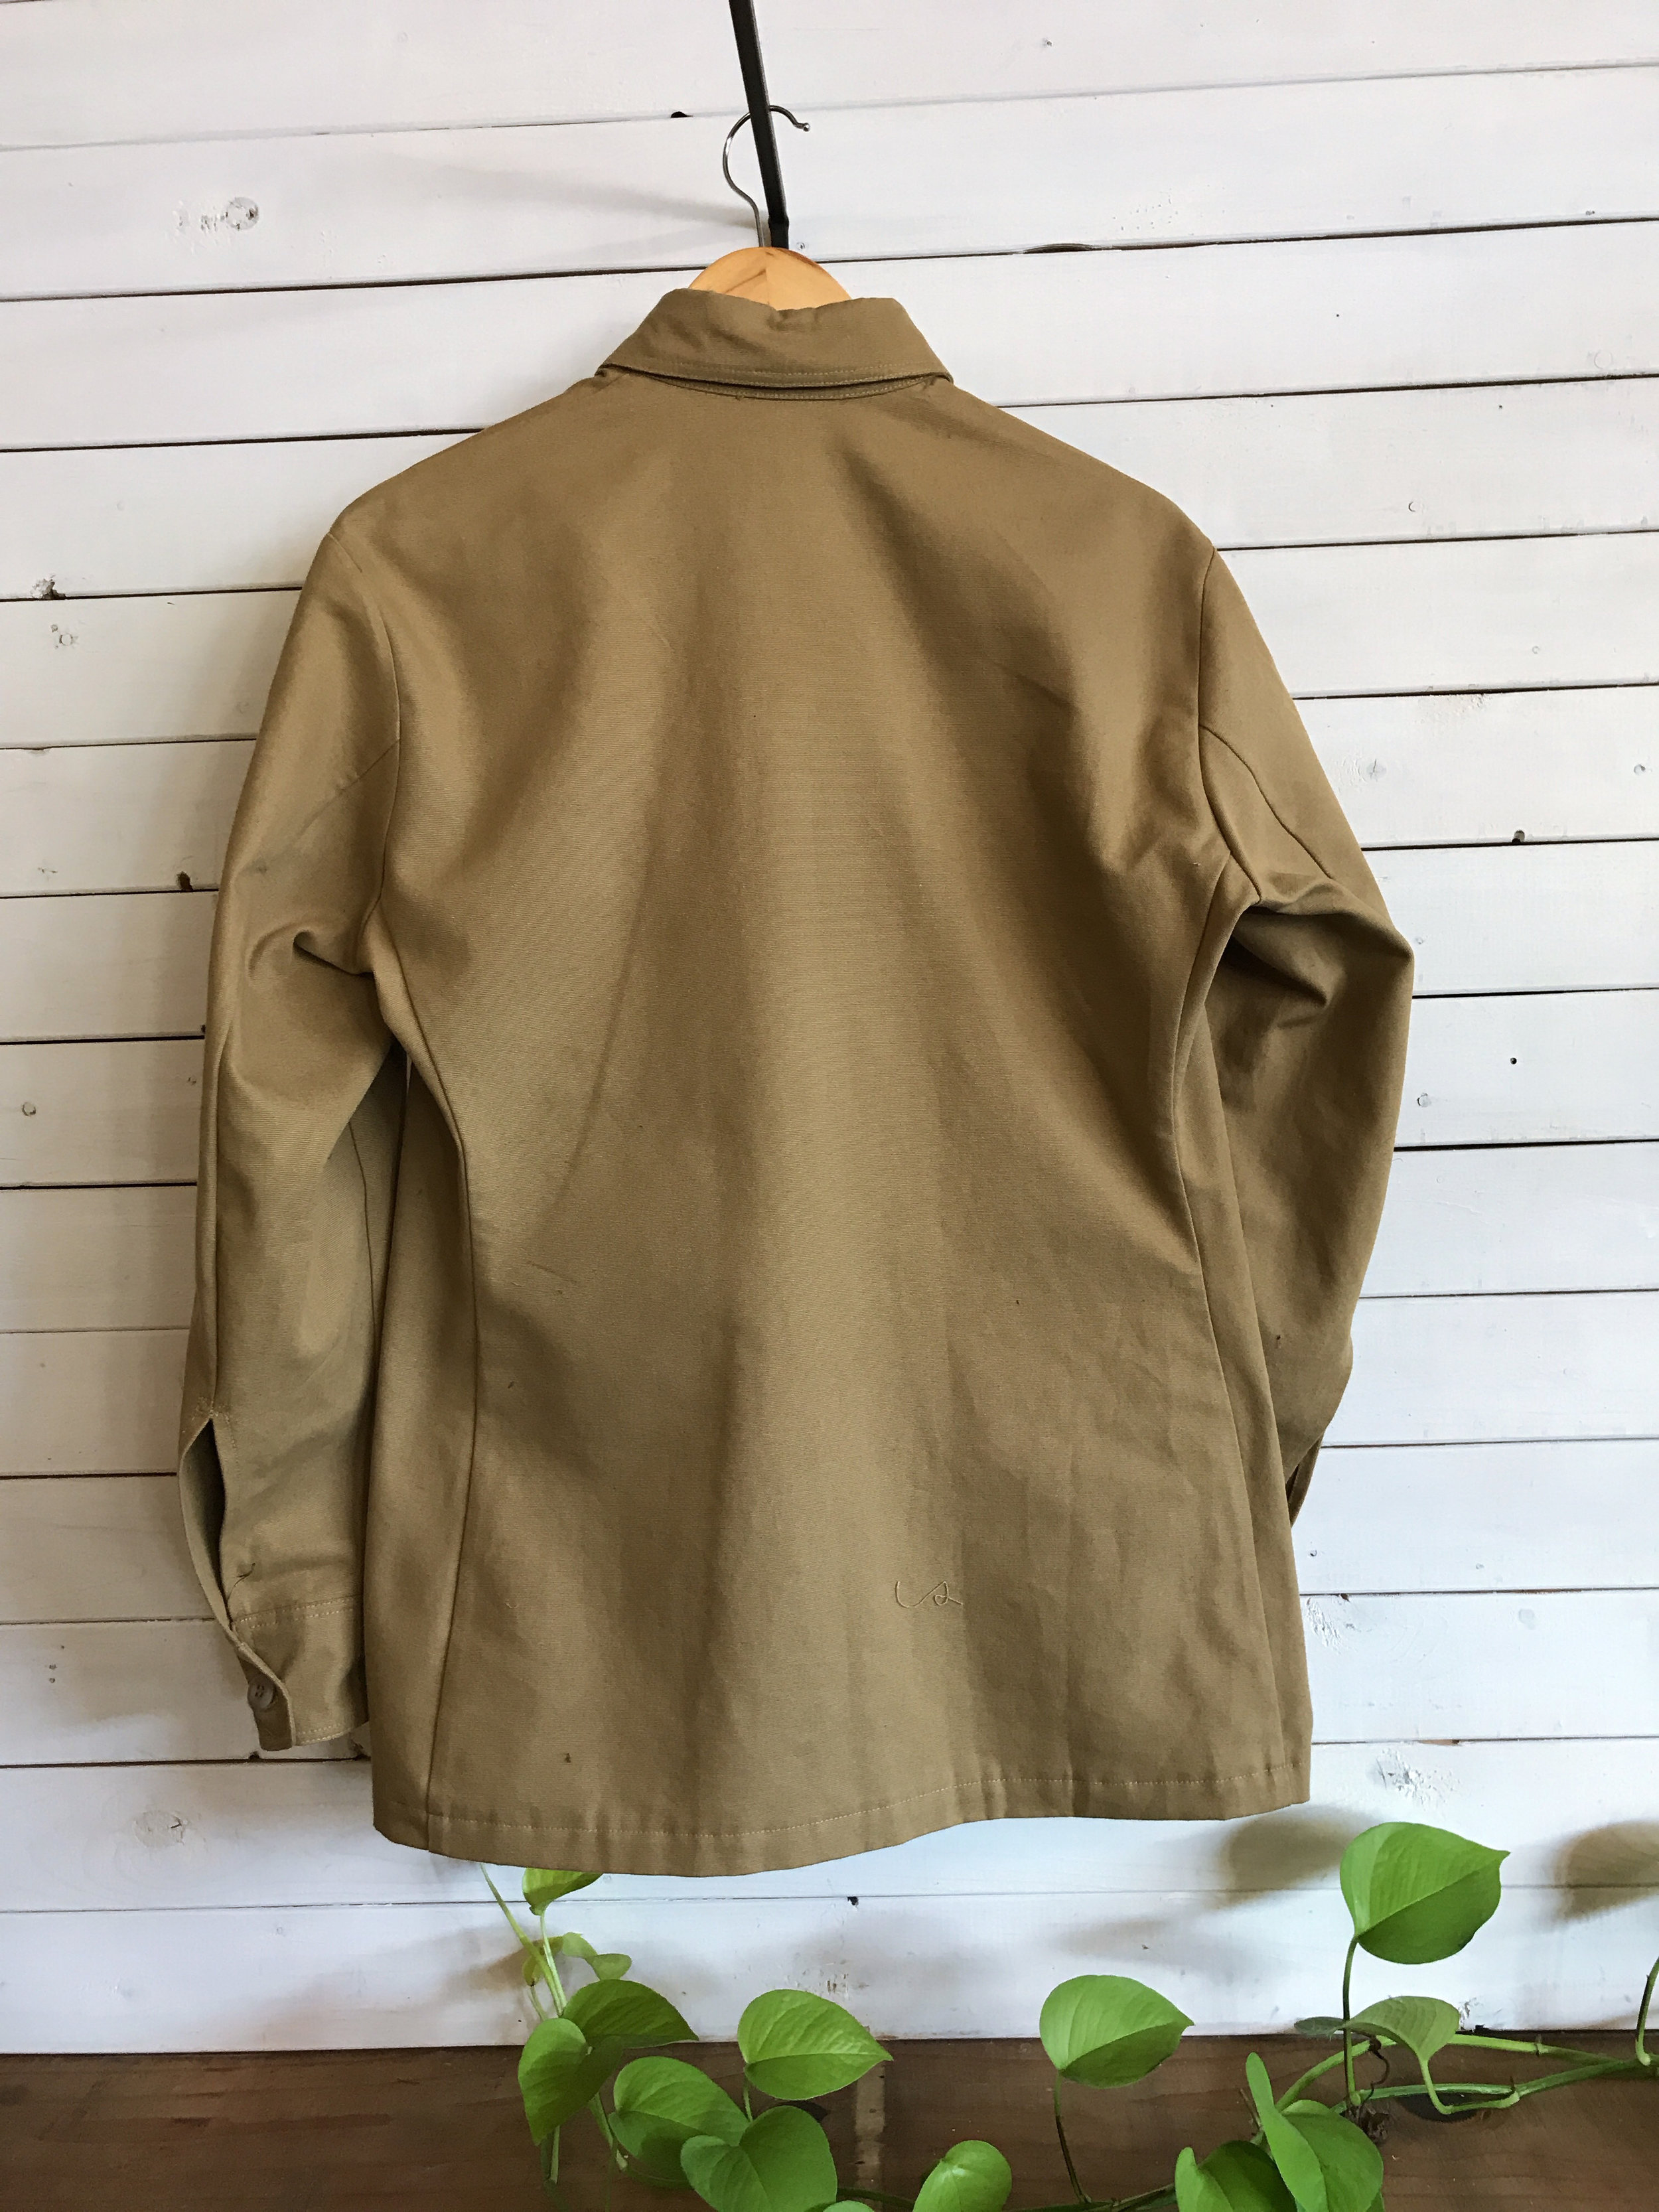 Back - Back view of tan jacket